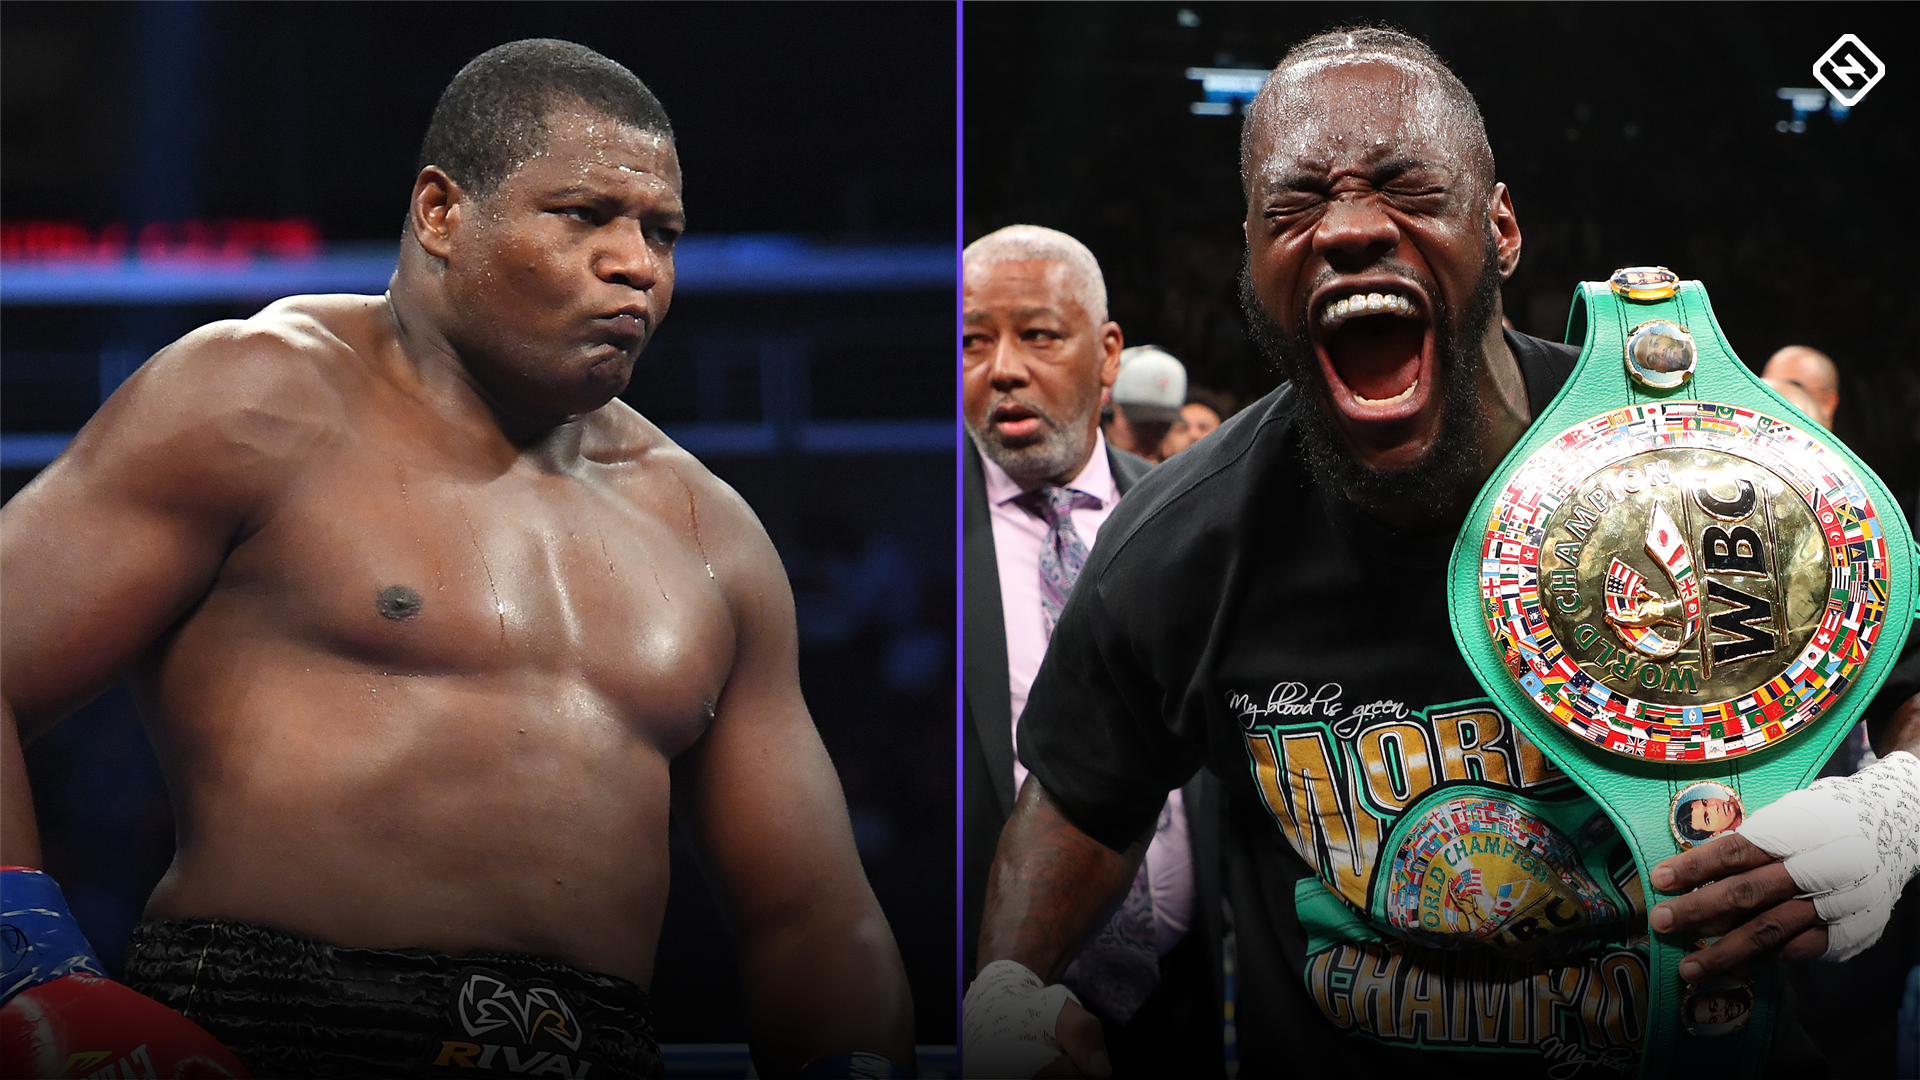 Deontay Wilder vs. Luis Ortiz 2 date, time, PPV price, boxing odds, undercard how to watch the fight